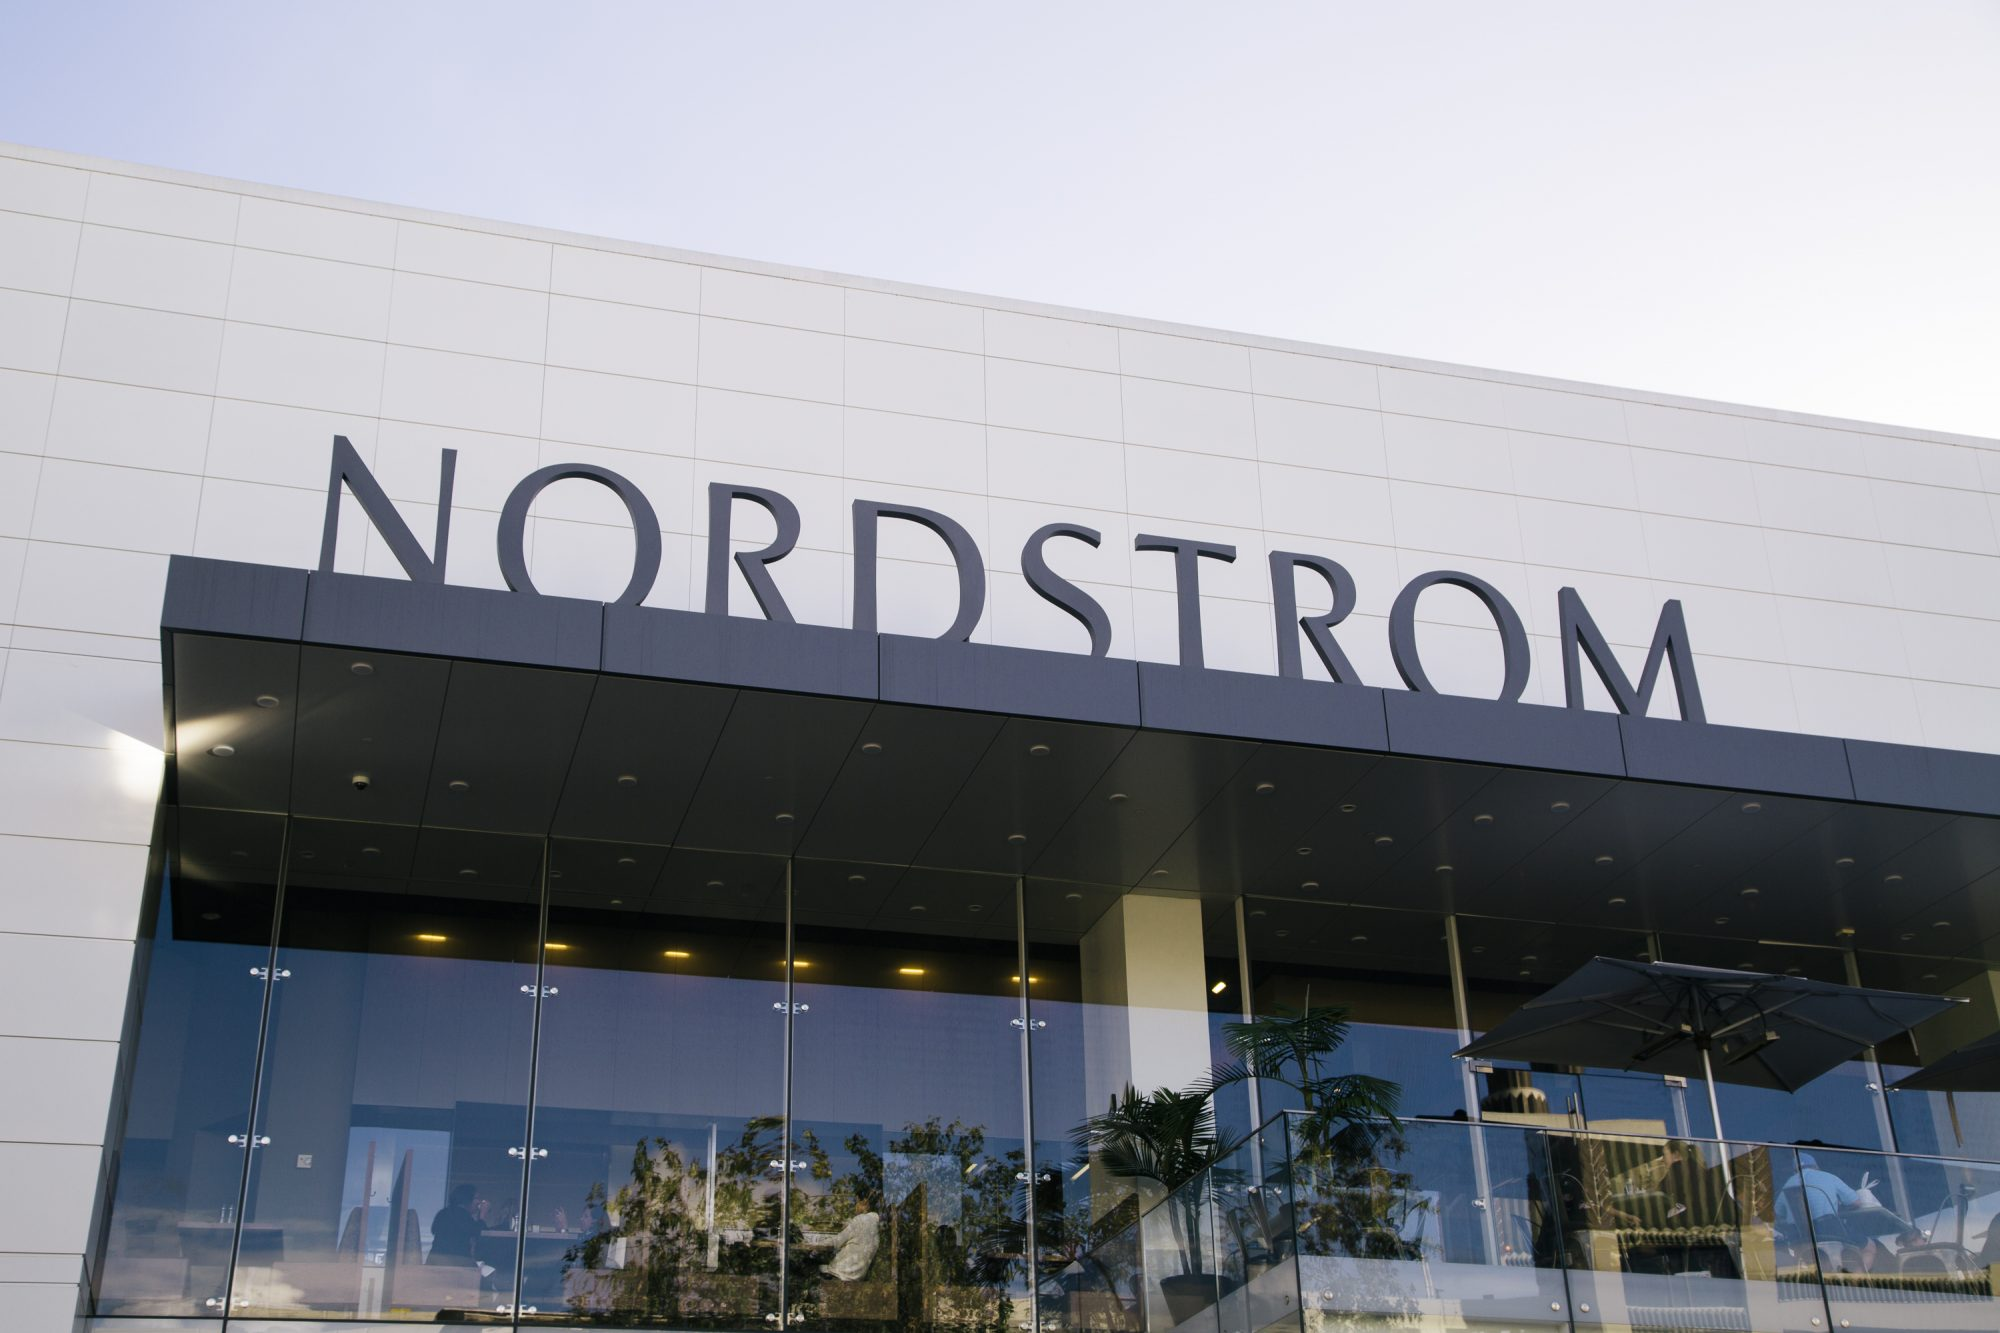 Nordstrom After Christmas Sale: Best Winter Clothing Deals